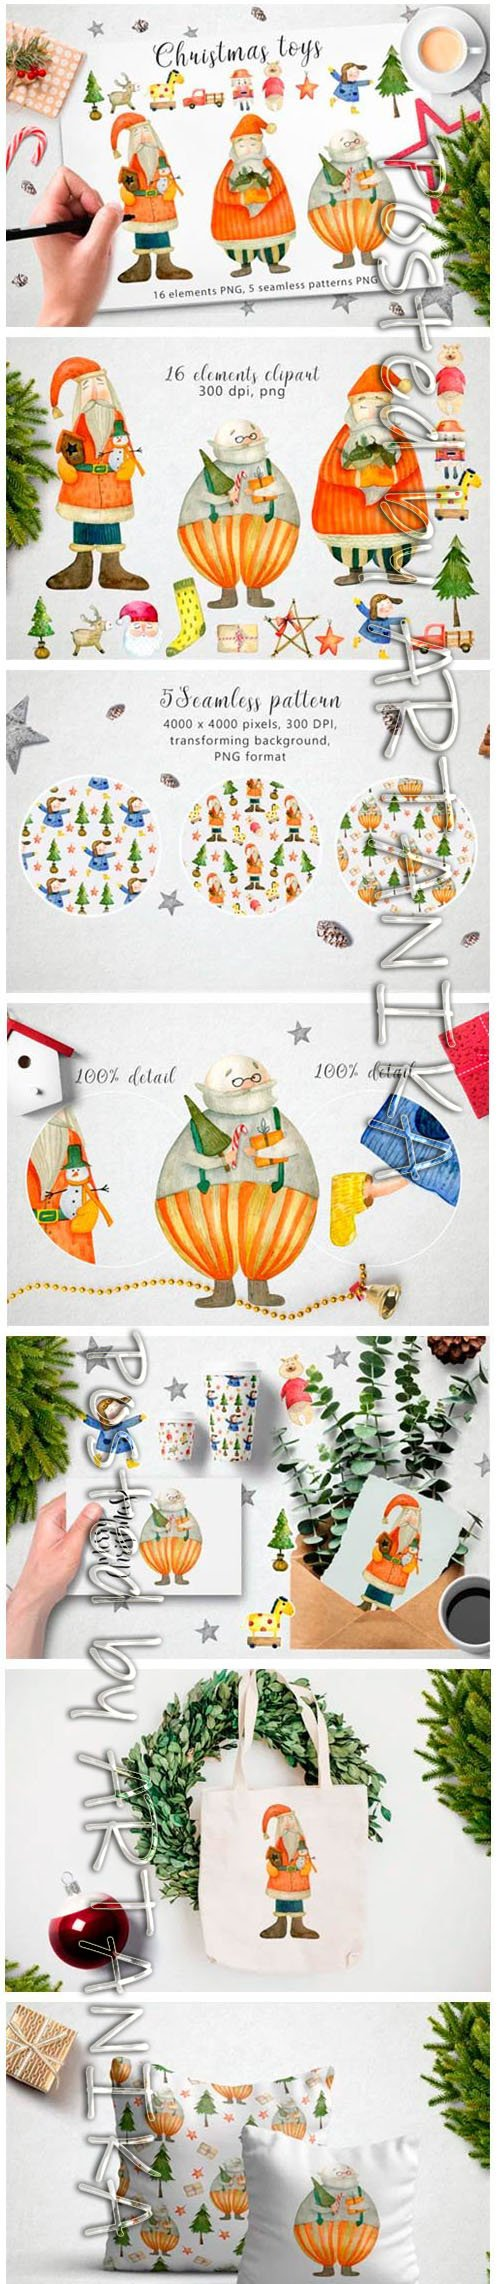 Watercolor Christmas Toys 2029161